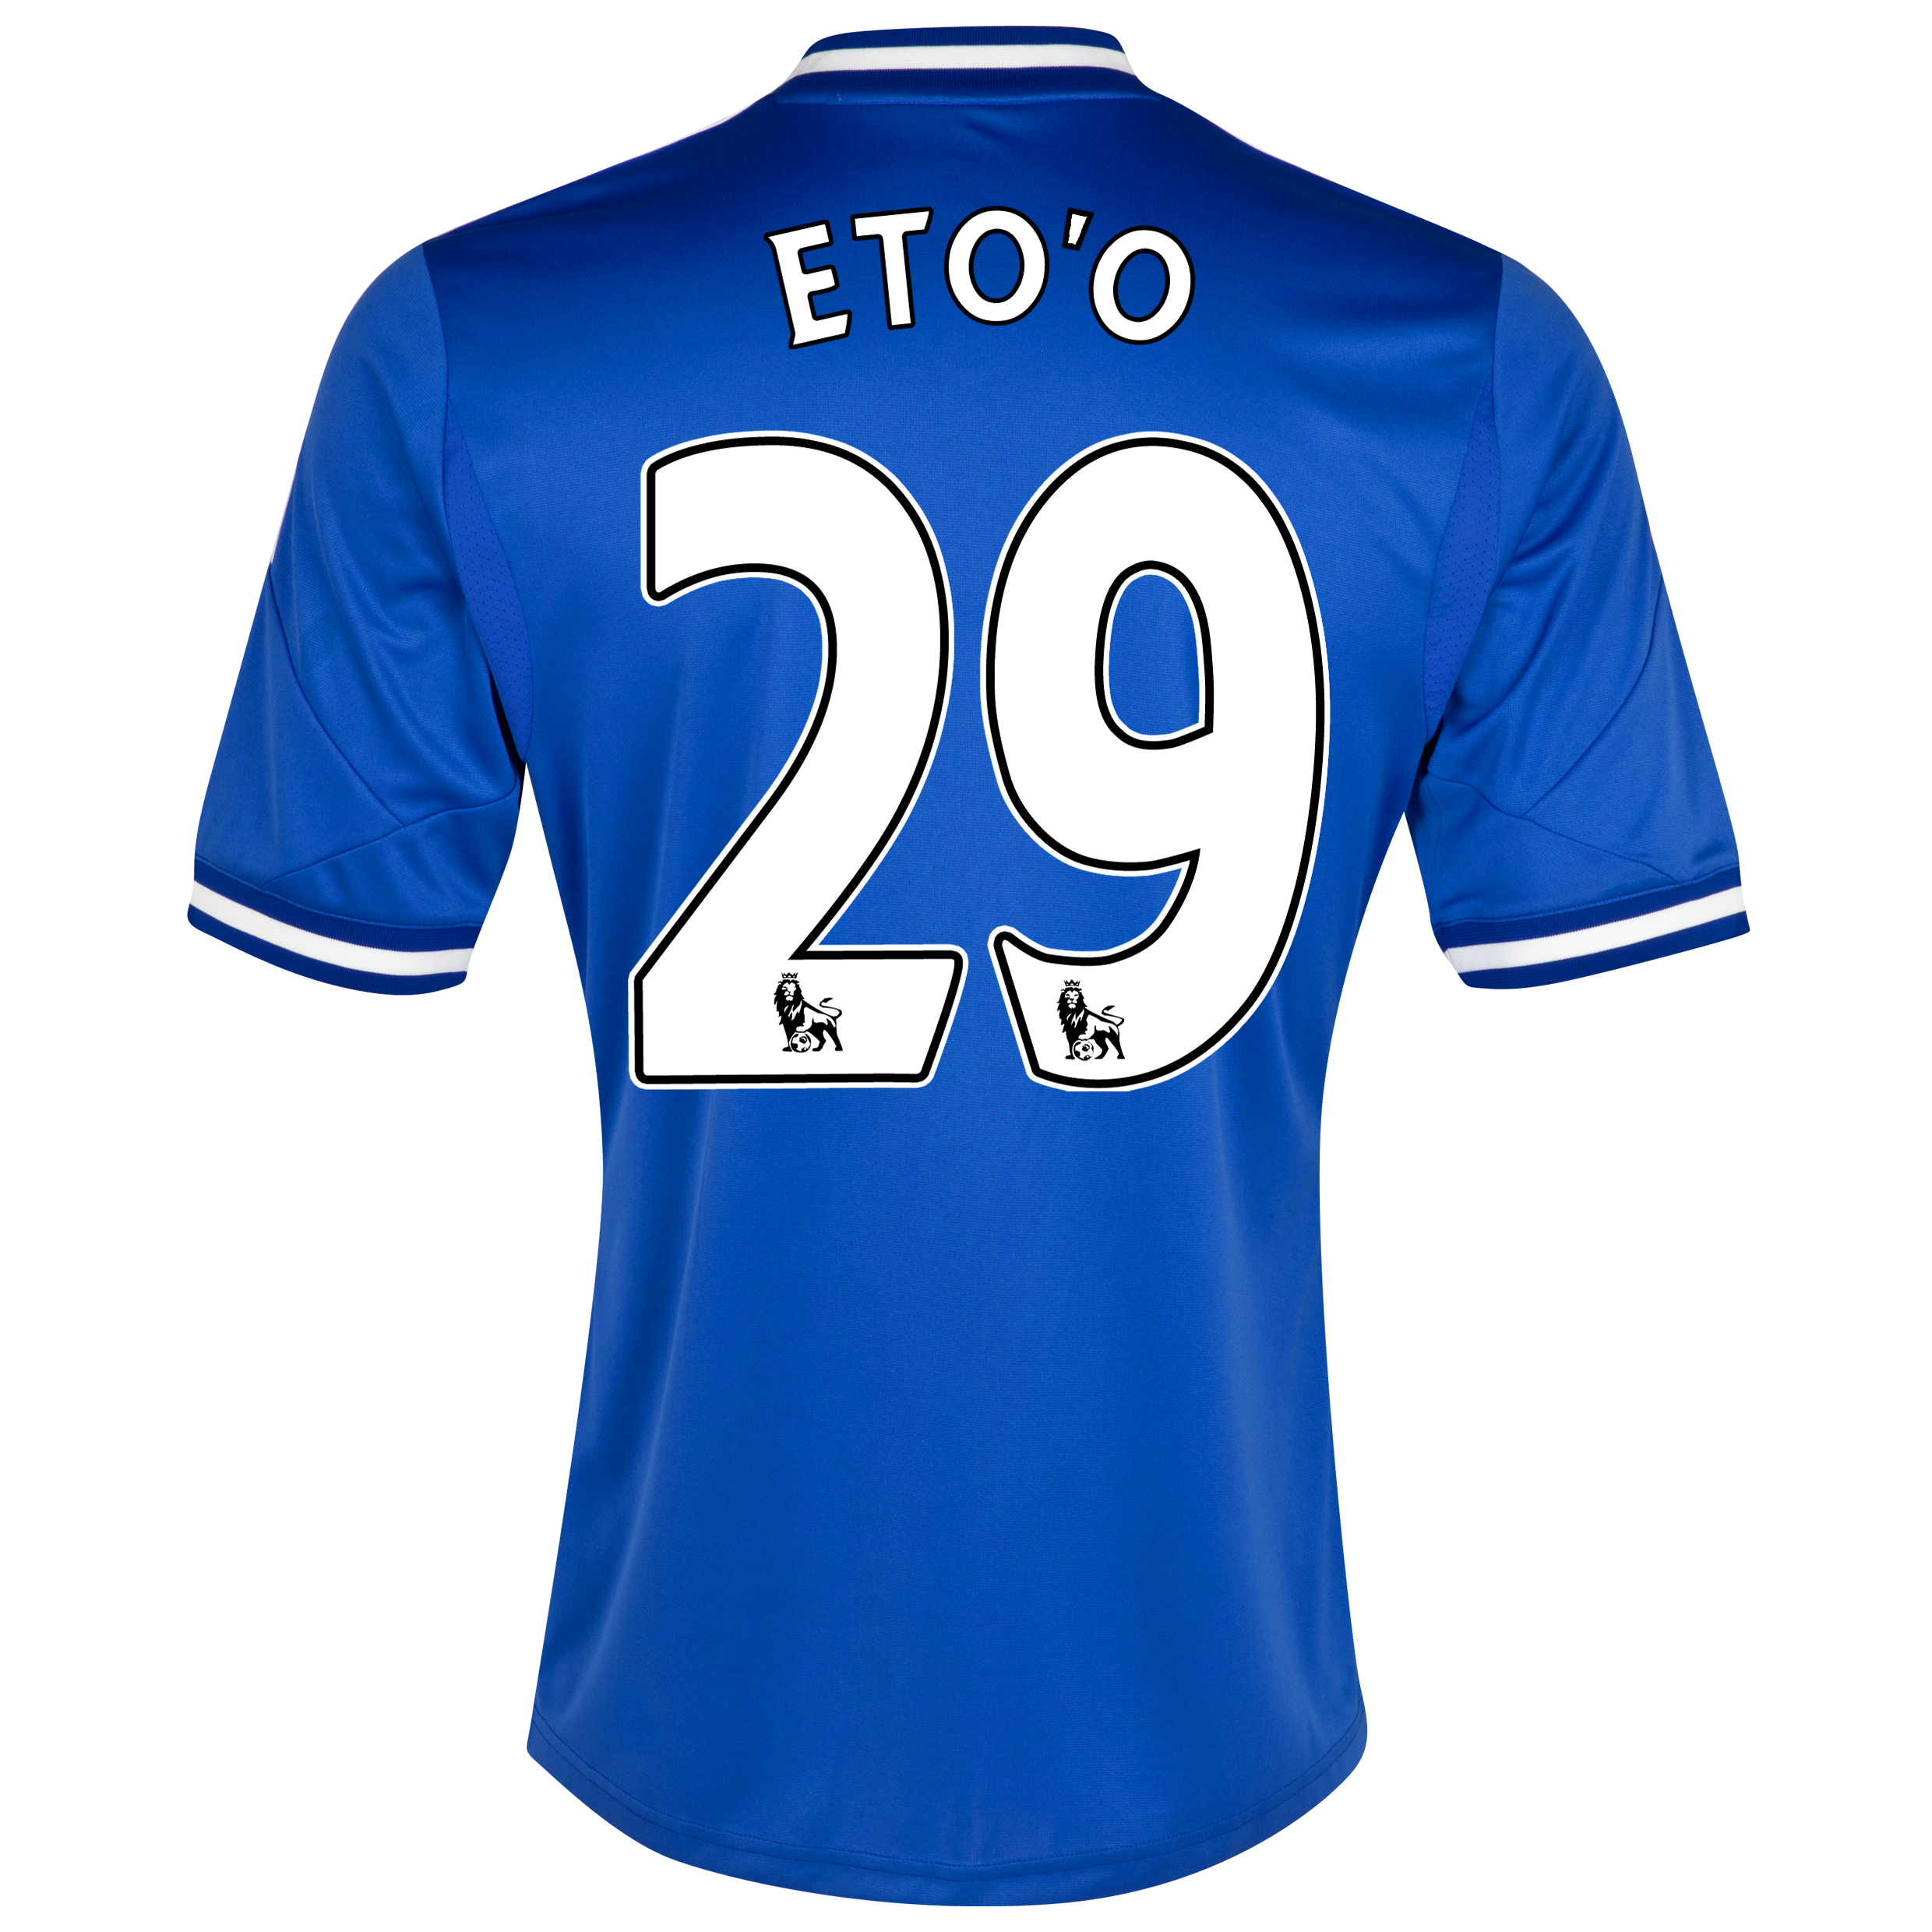 Chelsea Home Shirt 2013/14 - Kids with Eto'o 29 printing